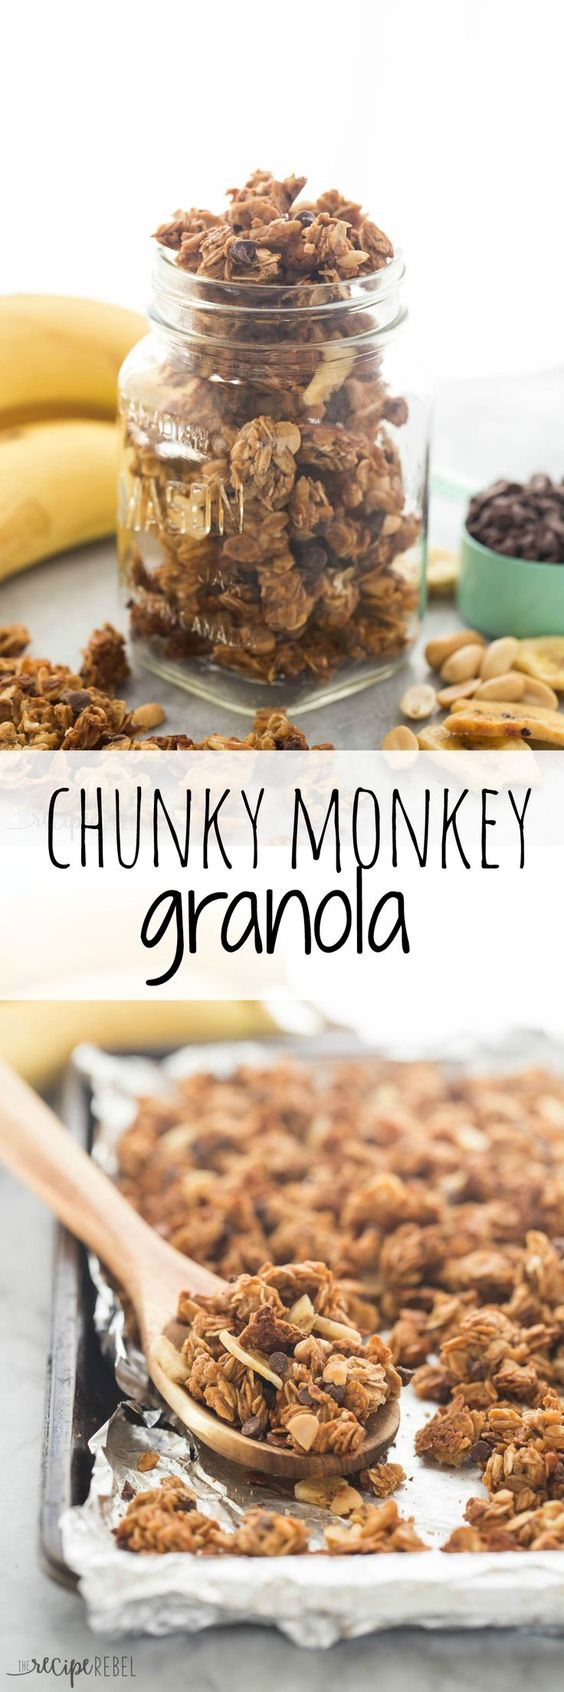 An easy granola made with banana, chocolate and peanut butter — Chunky Monkey granola! A great source of protein and fiber!